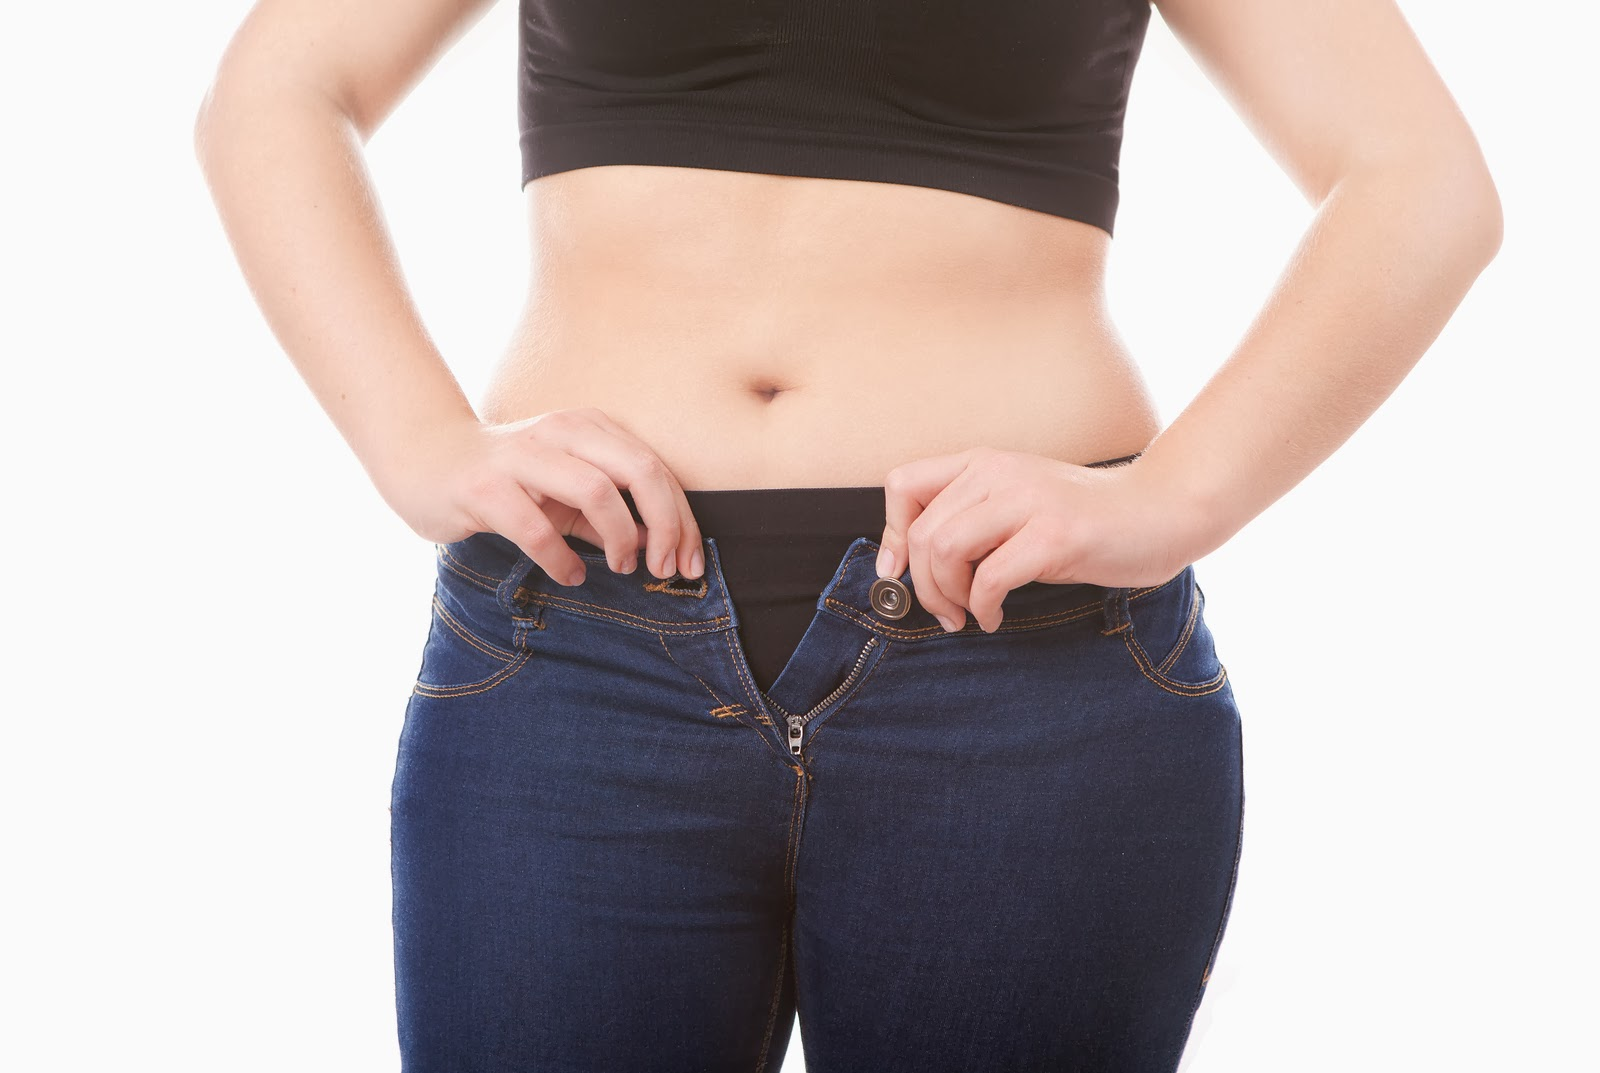 signs your sleep deprived gaining weight